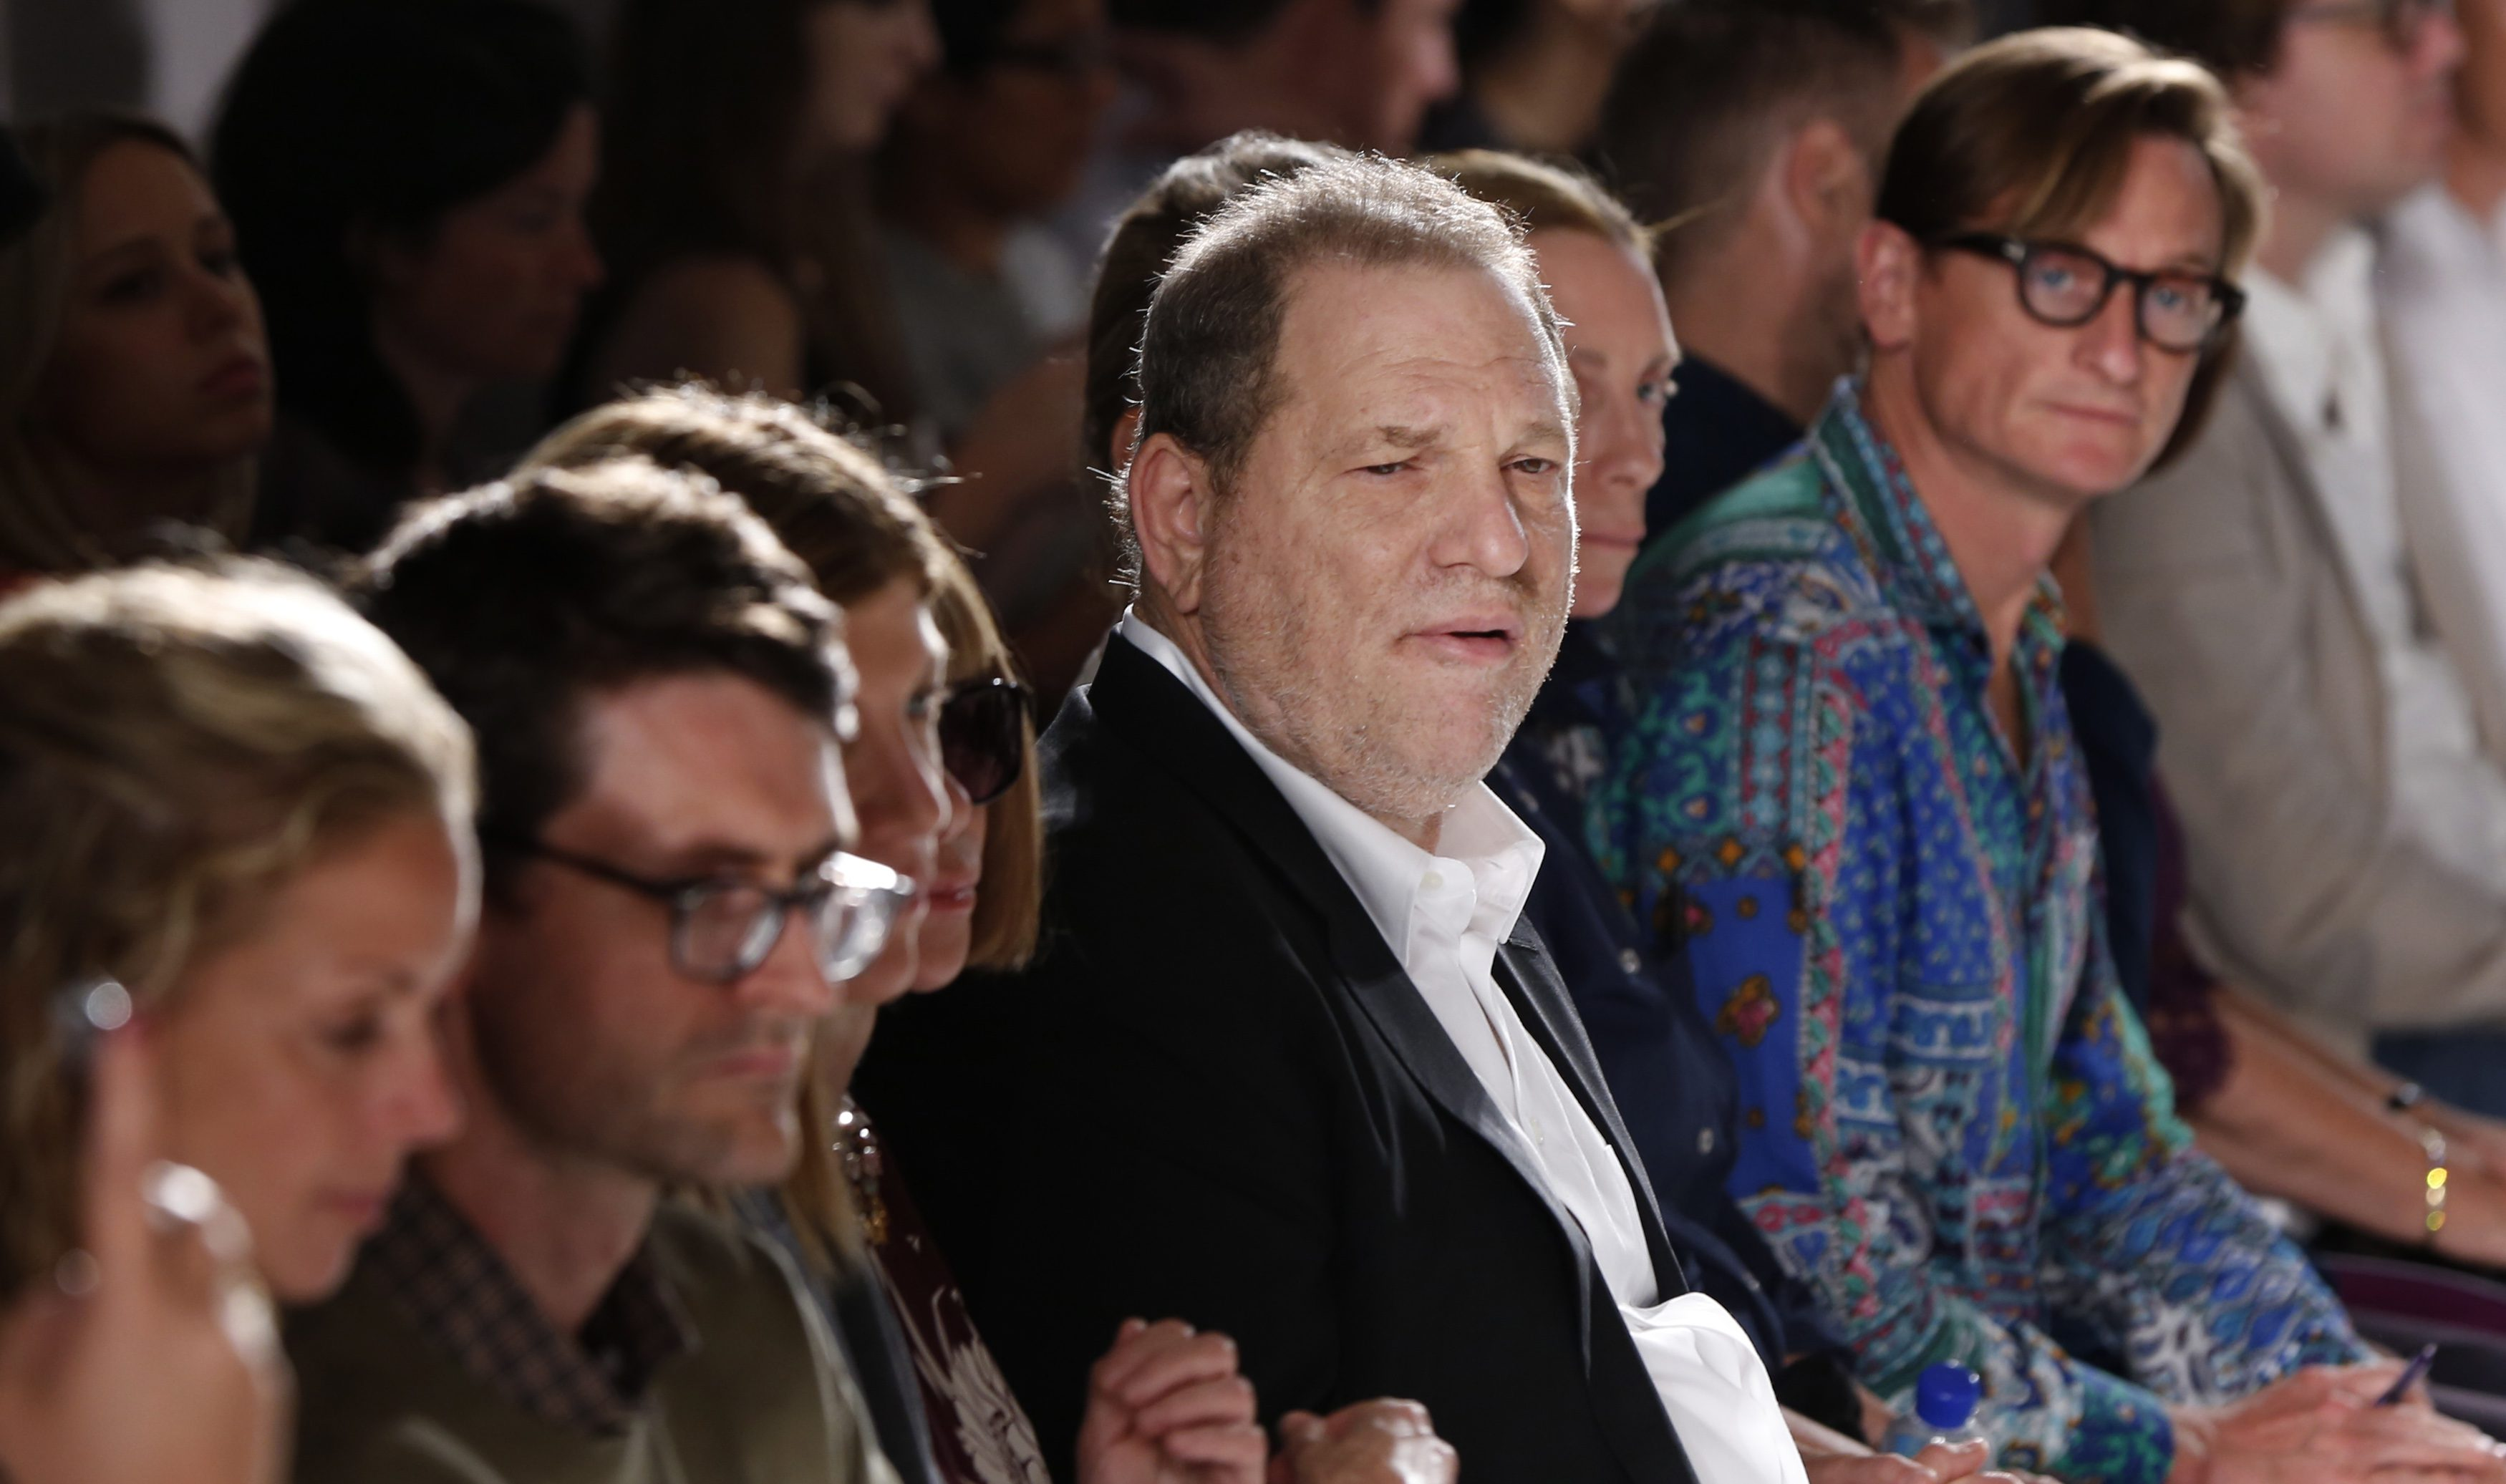 Director Harvey Weinstein (C) watches models present the Marchesa Spring/Summer 2014 collection during New York Fashion Week September 11, 2013. REUTERS/Lucas Jackson (UNITED STATES - Tags: FASHION ENTERTAINMENT) - GM1E99C0IL201Director Harvey Weinstein (C) watches models present the Marchesa Spring/Summer 2014 collection during New York Fashion Week September 11, 2013. REUTERS/Lucas Jackson (UNITED STATES - Tags: FASHION ENTERTAINMENT) - GM1E99C0IL201